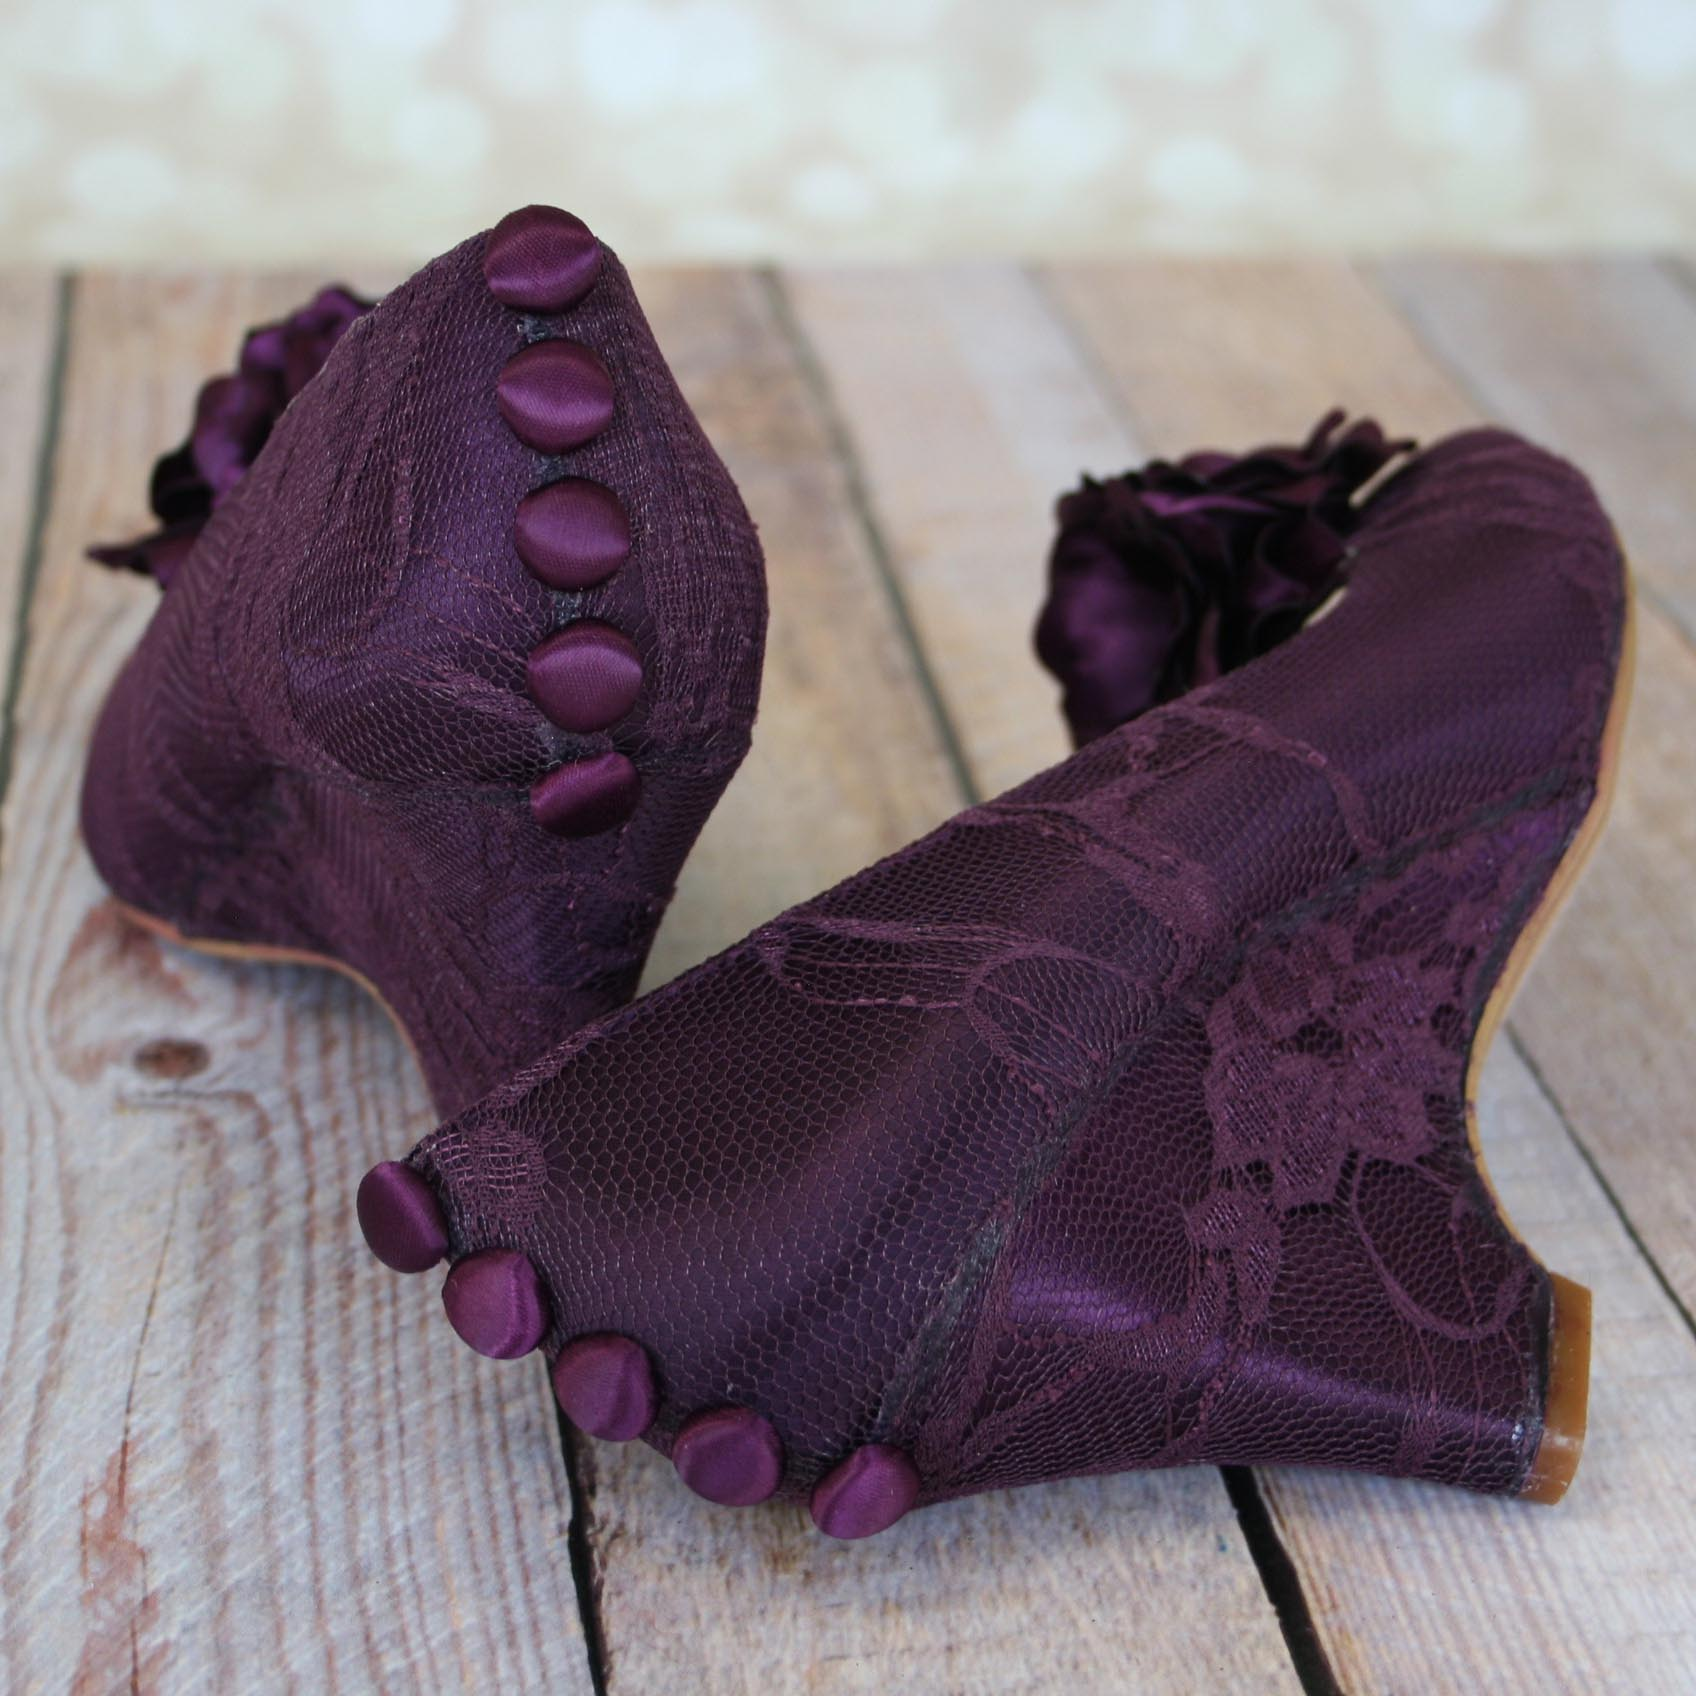 Plum Wedge Wedding Shoes Custom Wedding Shoes by Ellie Wren with Lace Overlay and Handmade Flowers